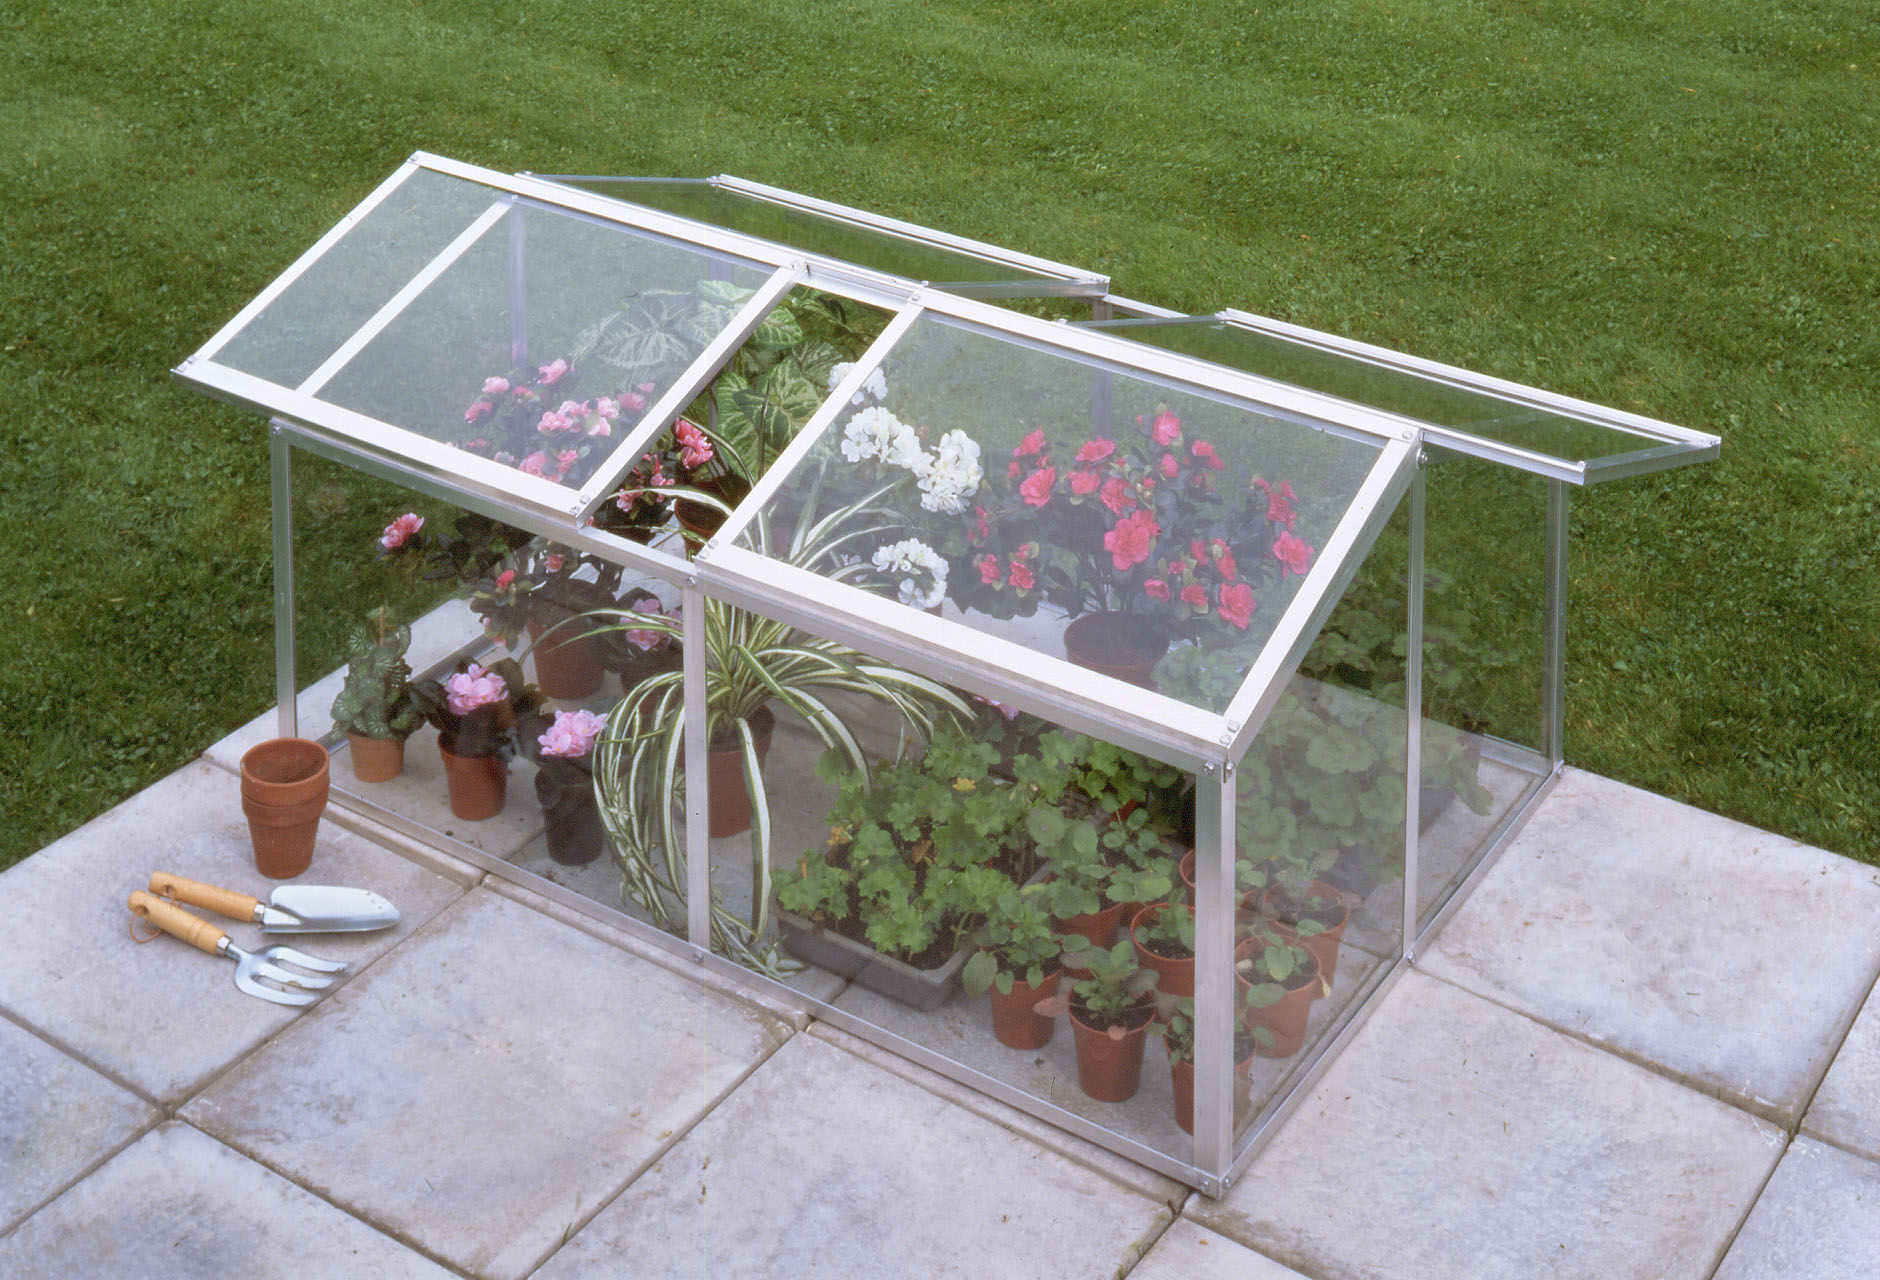 Silver Aluminium Jumbo Cold Frame Horticultural Glass